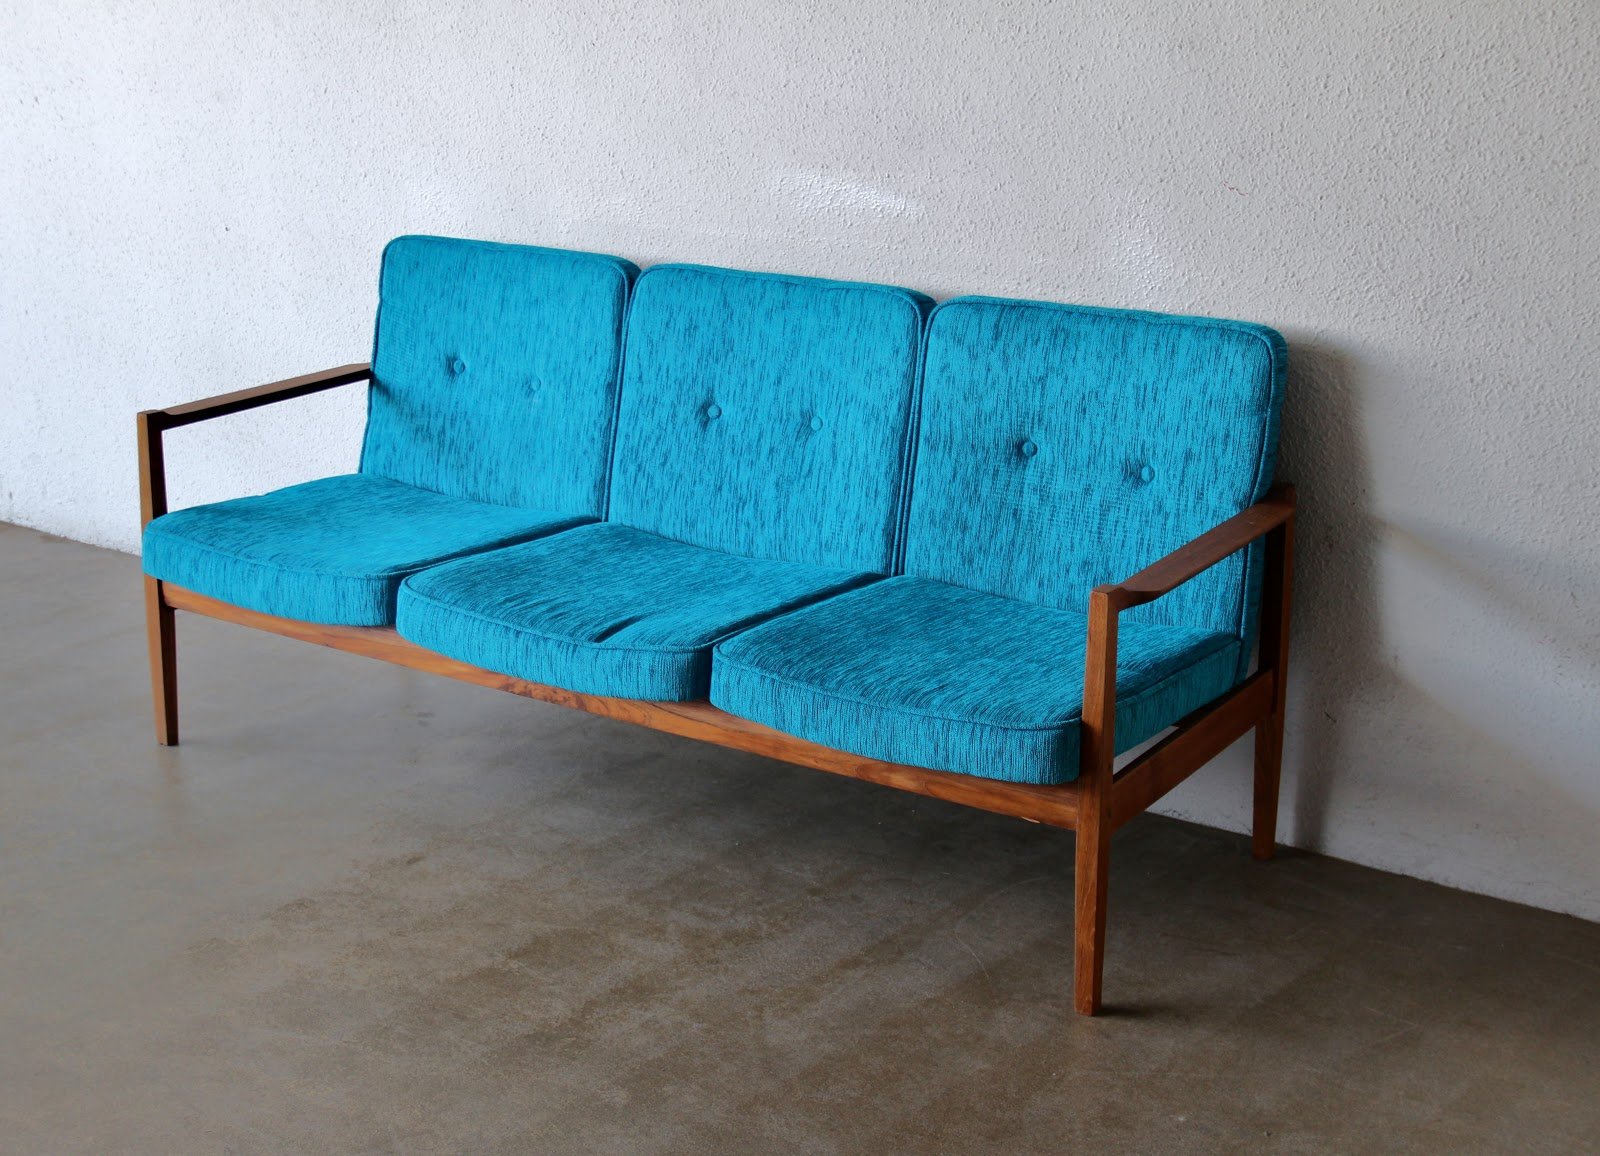 Second Charm Furniture Vintage Midcentury Sofas And